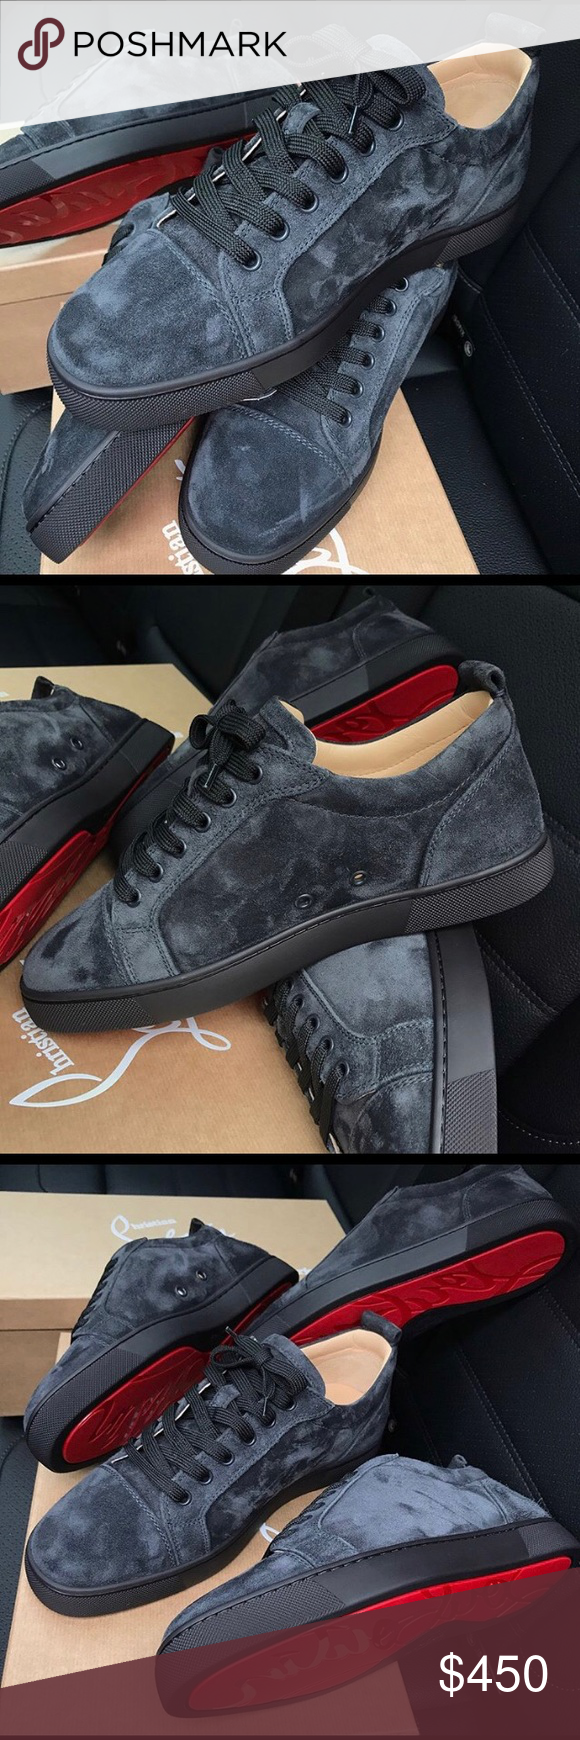 1cc78f601 Christian Louboutin Junior Low Grey Suede 100%AUTHENTIC No Fakes Sold Here❌  100%